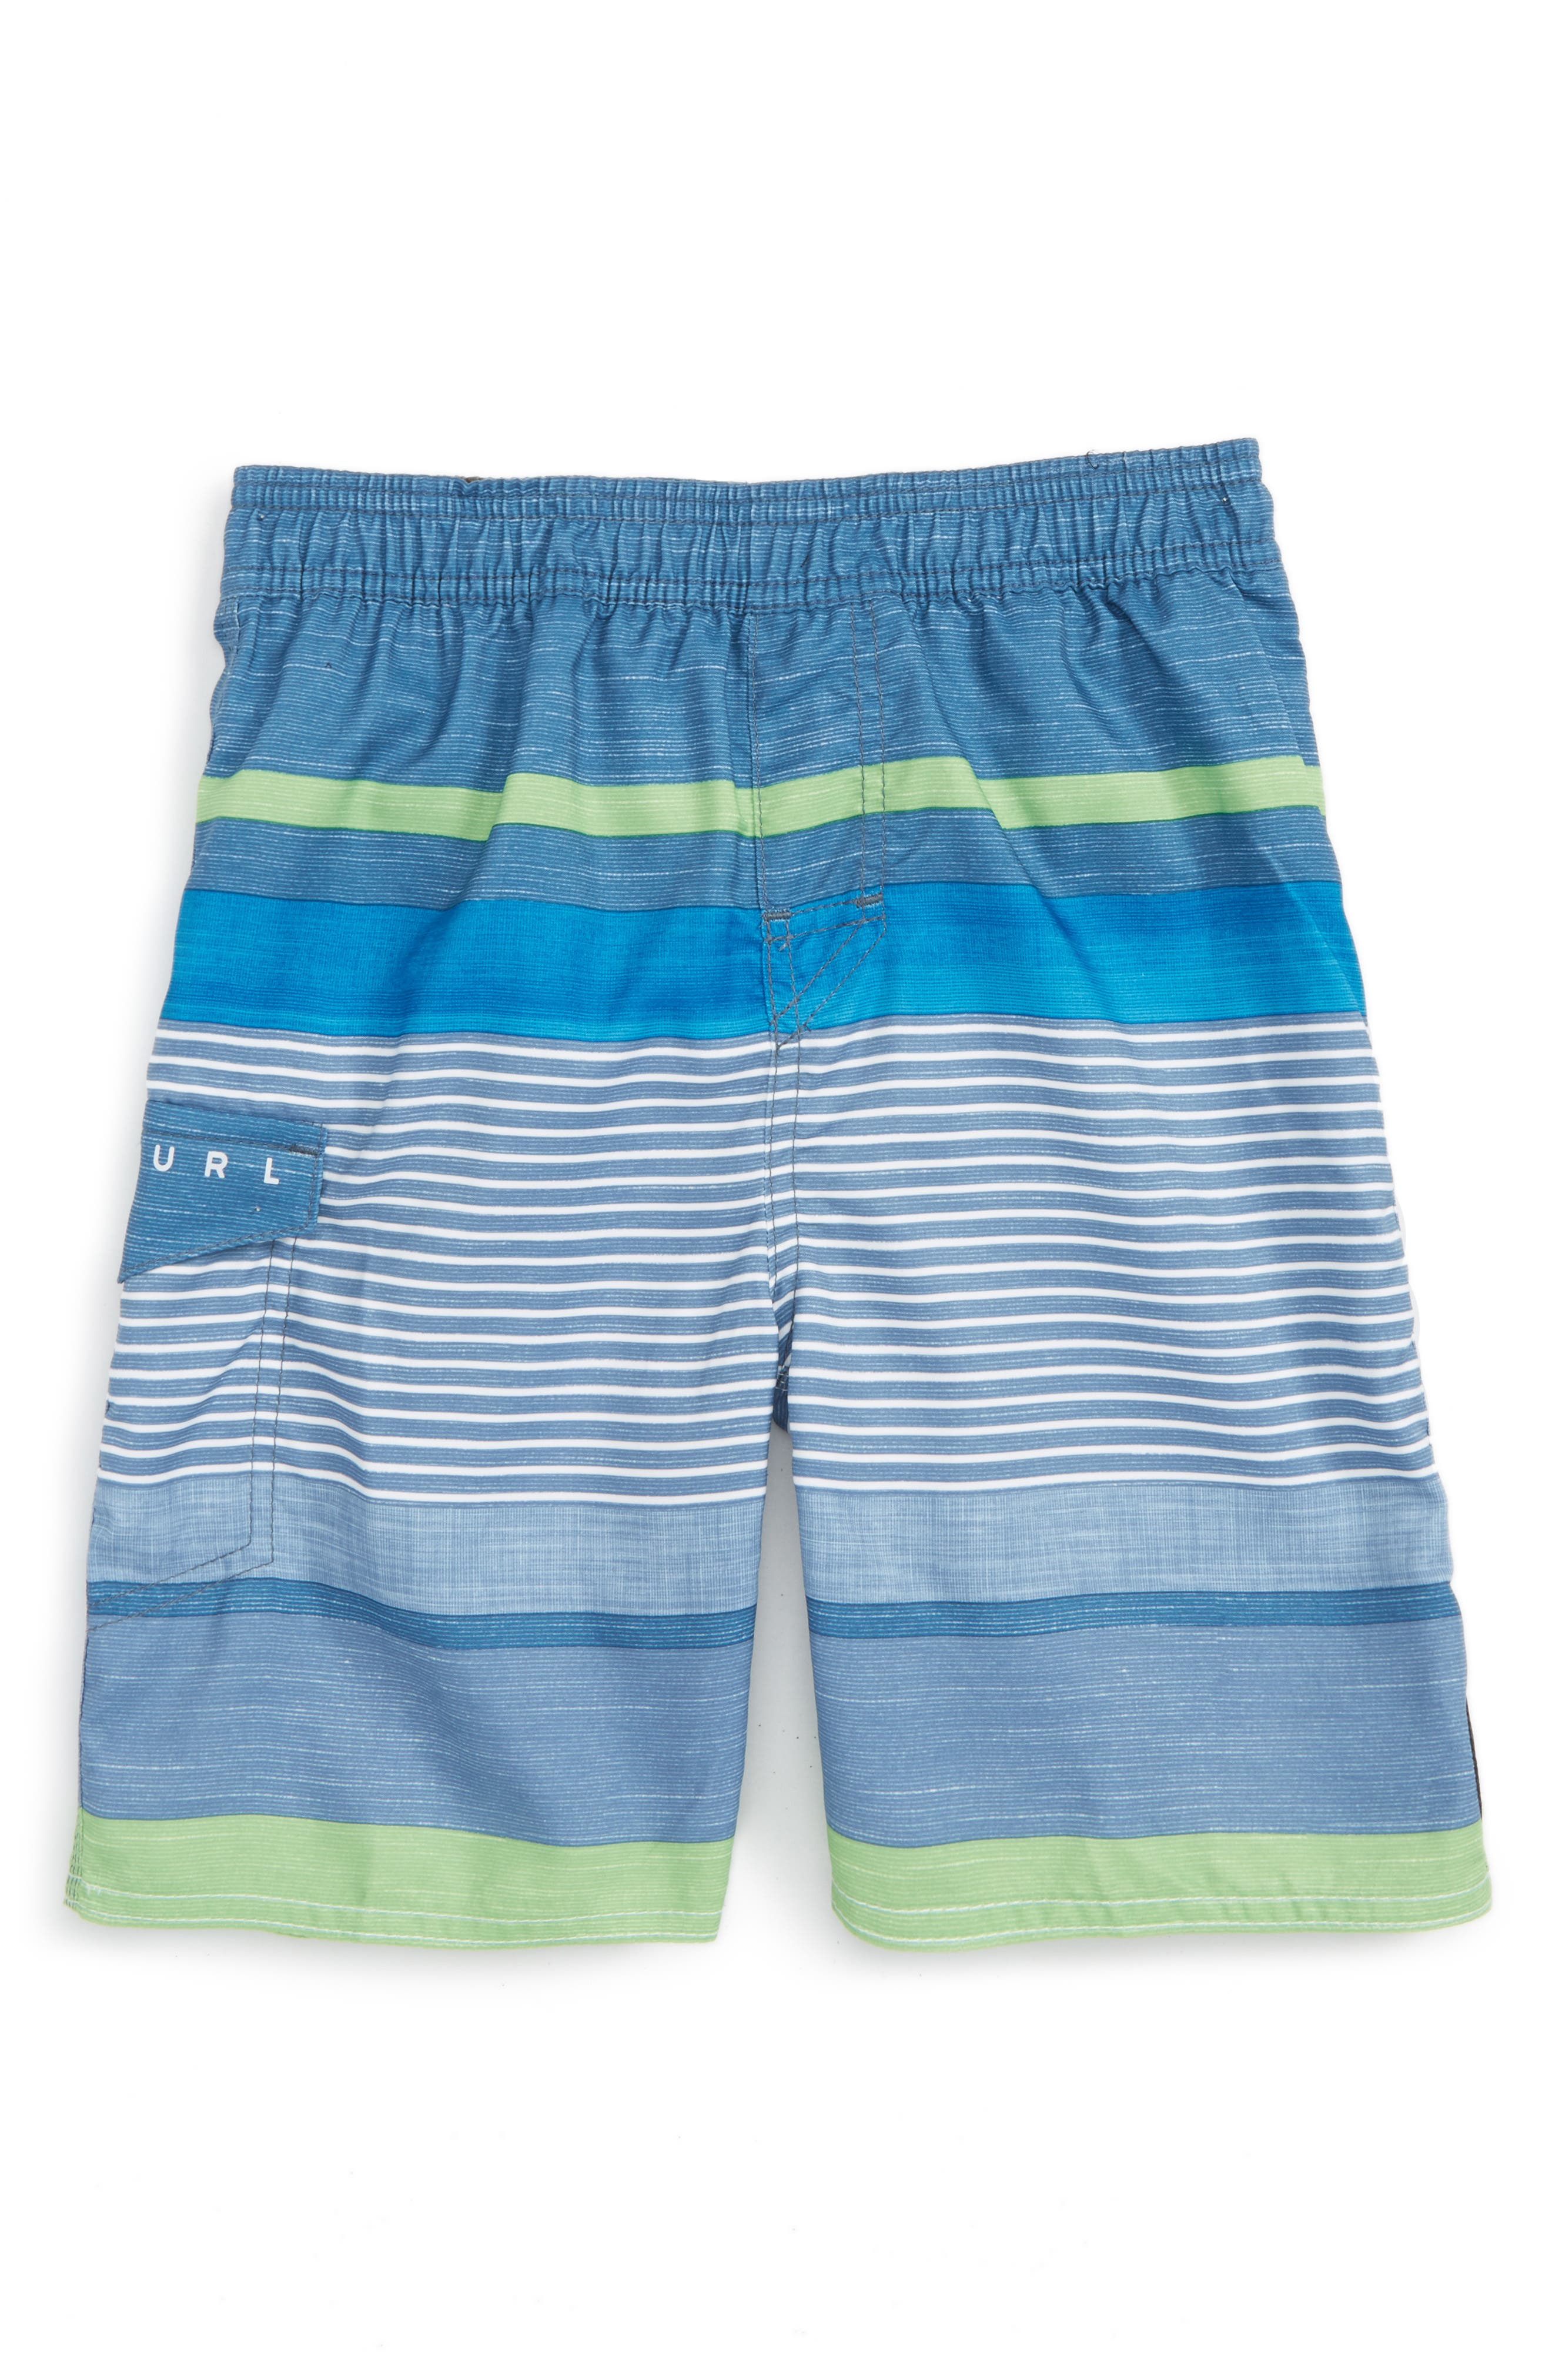 Rip Curl Capture Board Shorts (Toddler Boys & Little Boys)